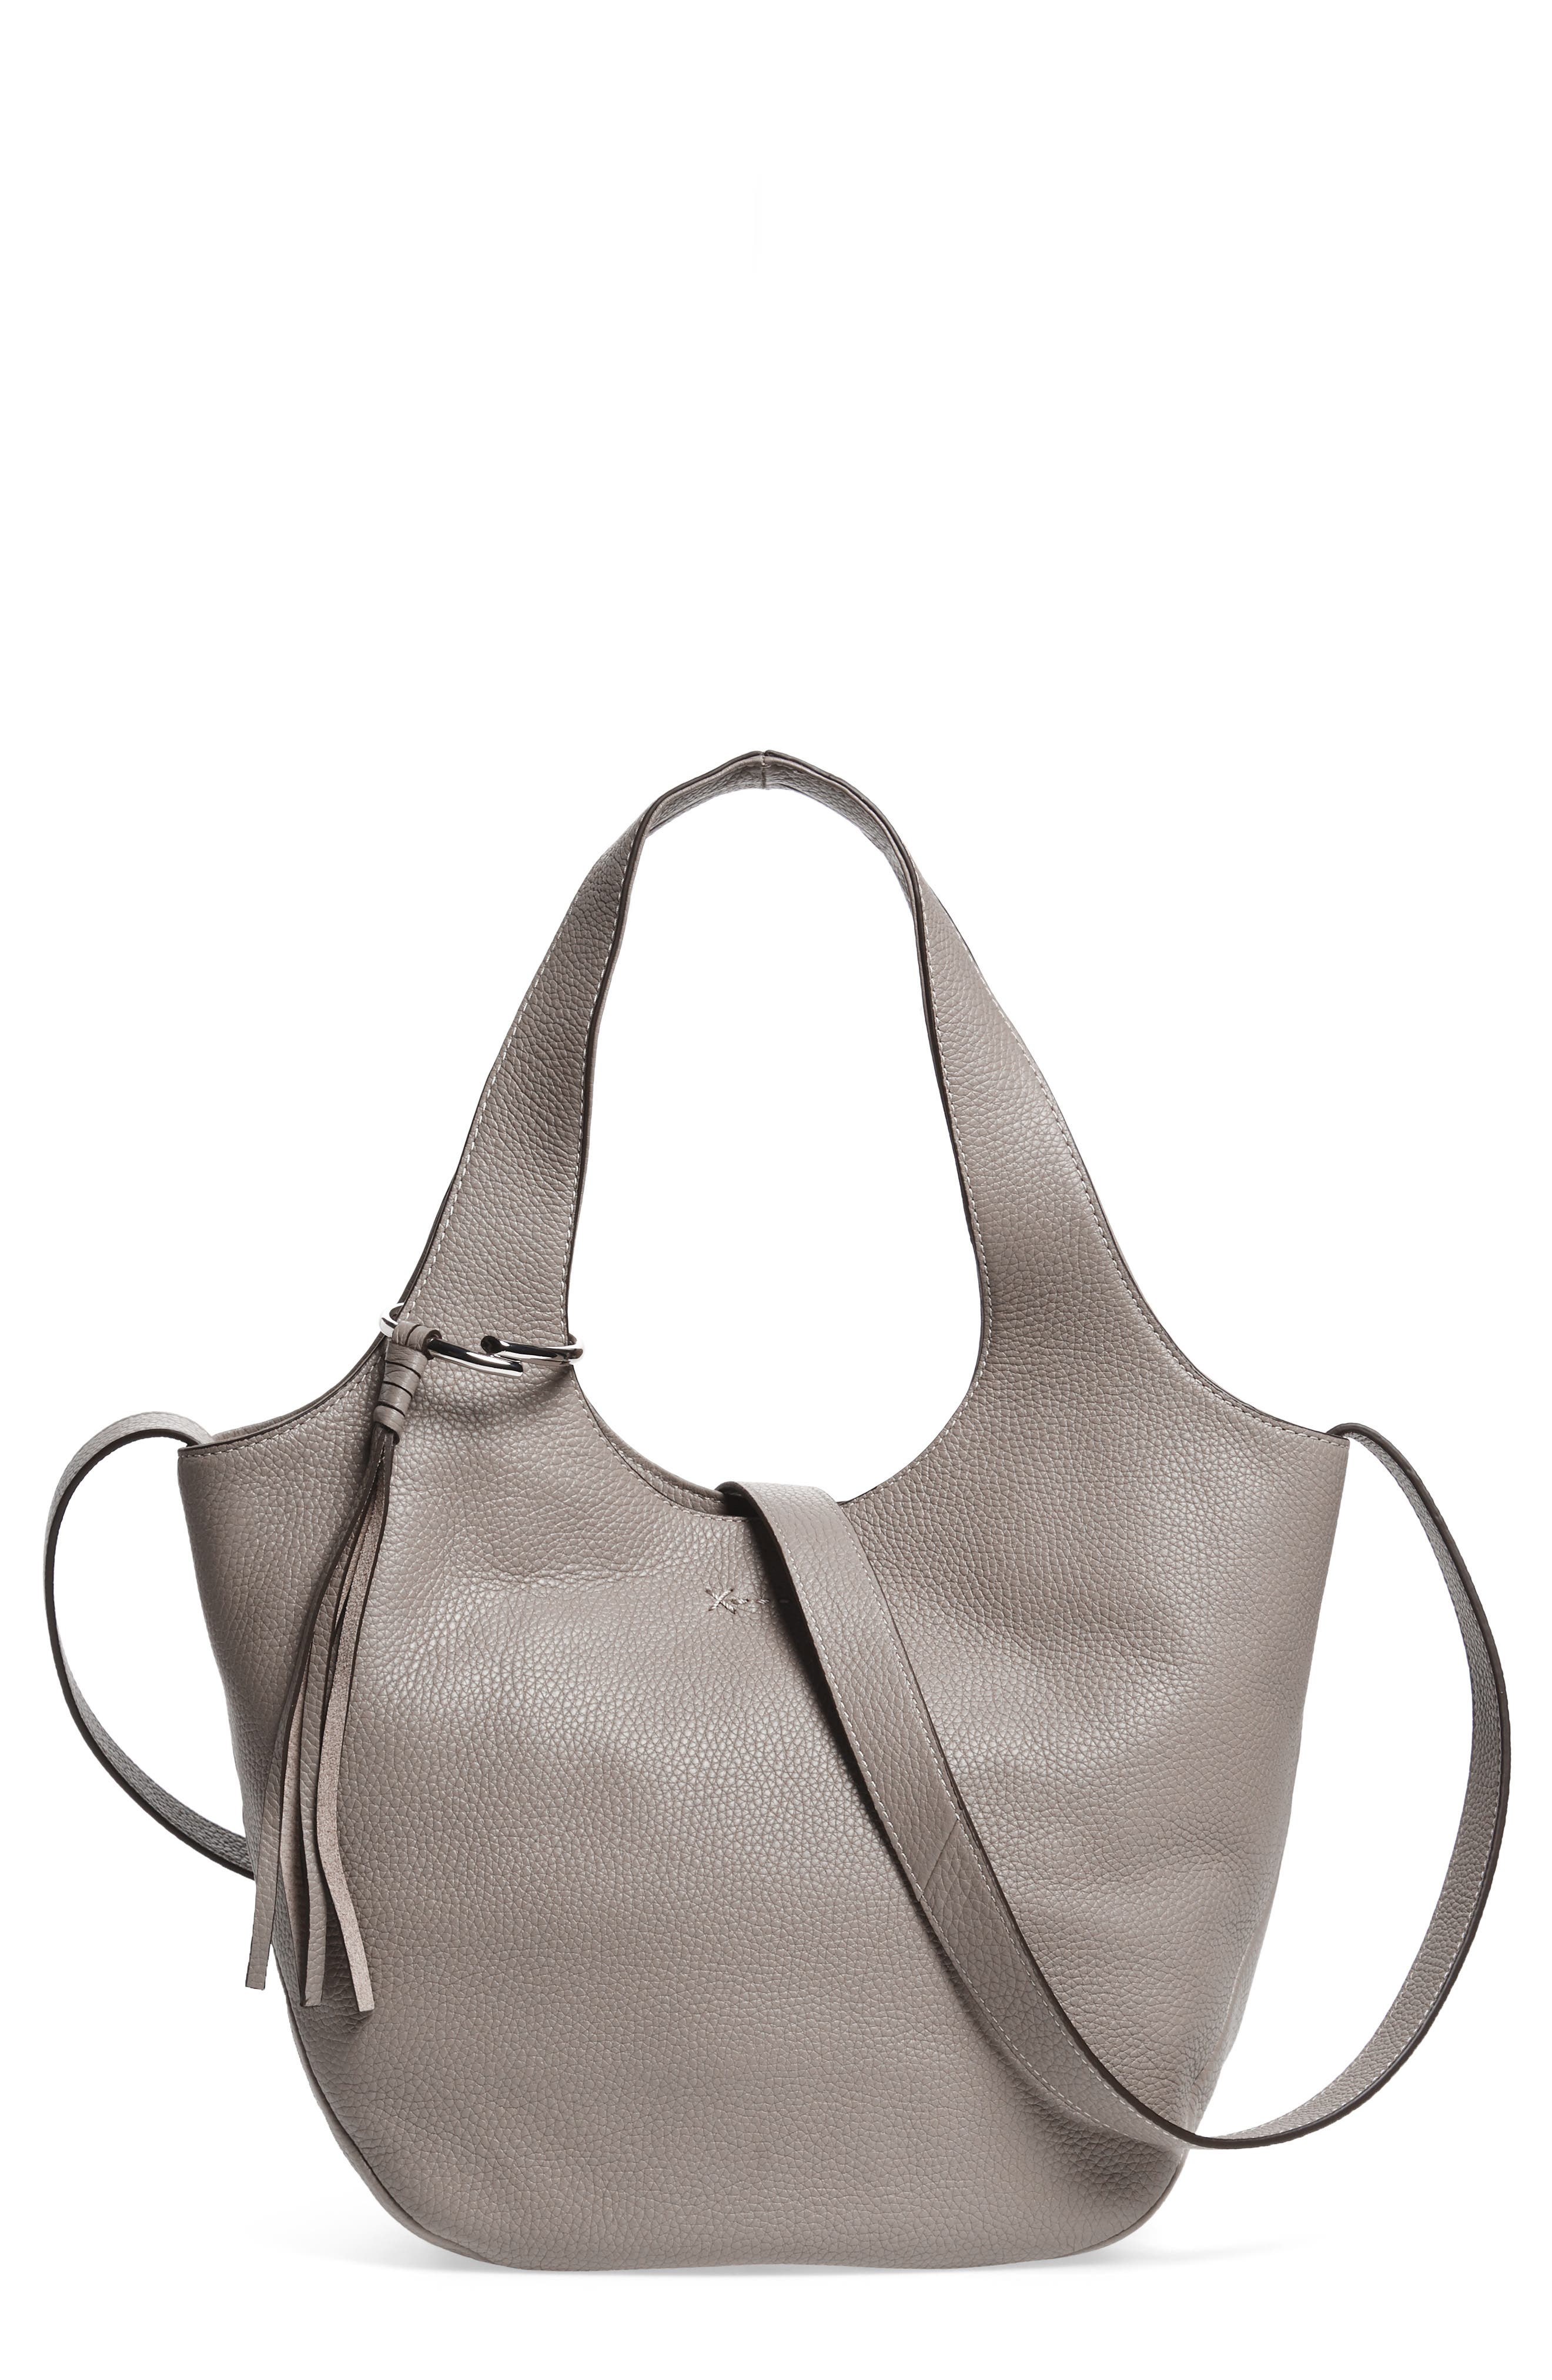 Alternate Image 1 Selected - Elizabeth and James Small Finley Leather Shopper